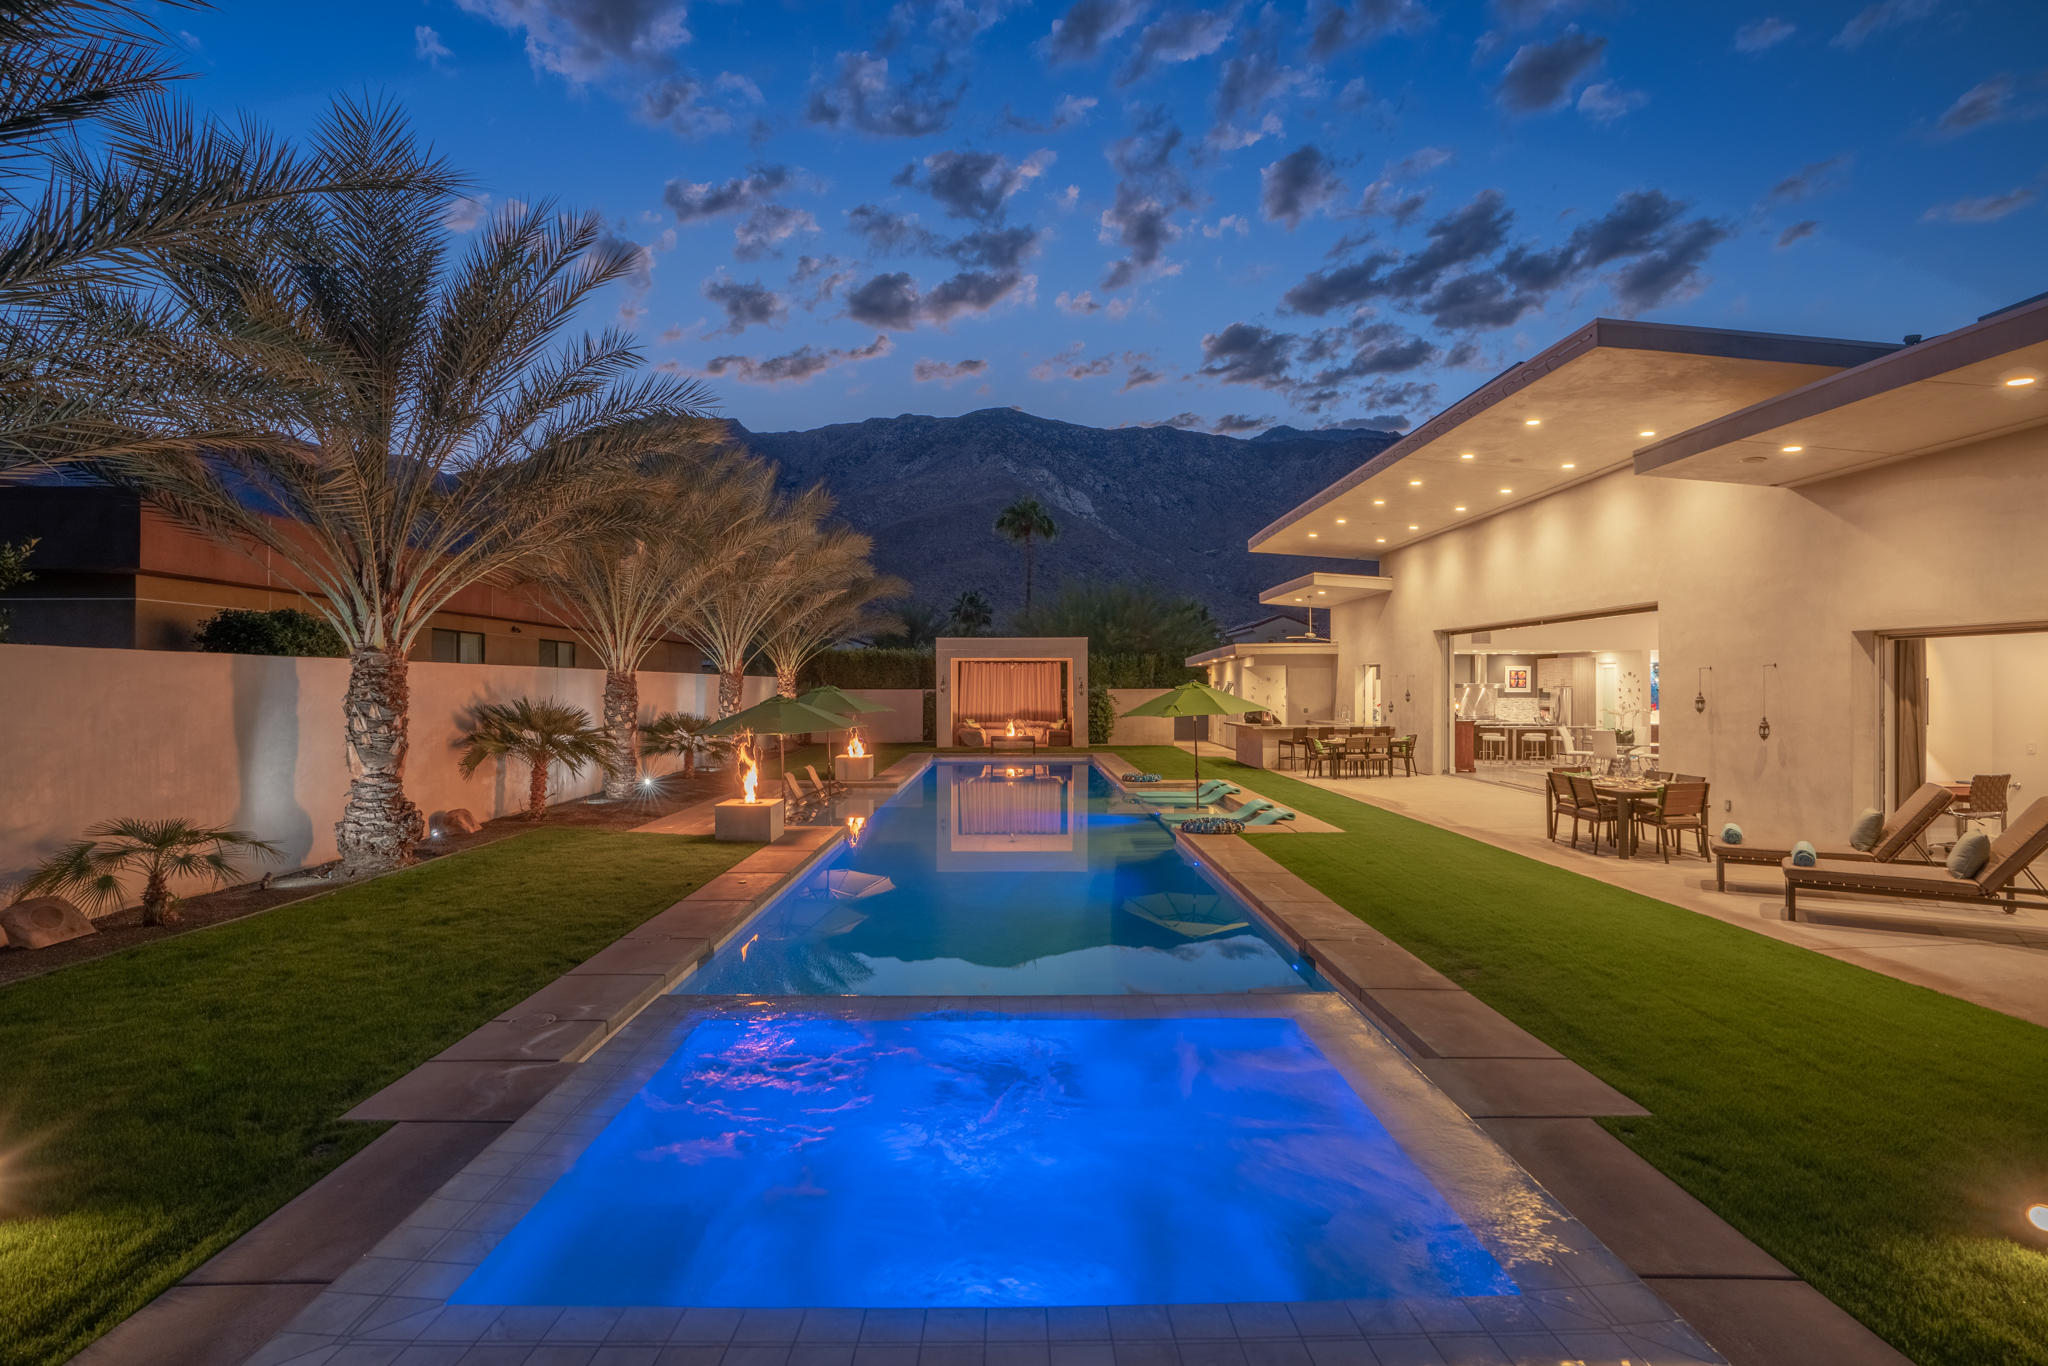 3182 Las Brisas Way, Palm Springs, CA 92264